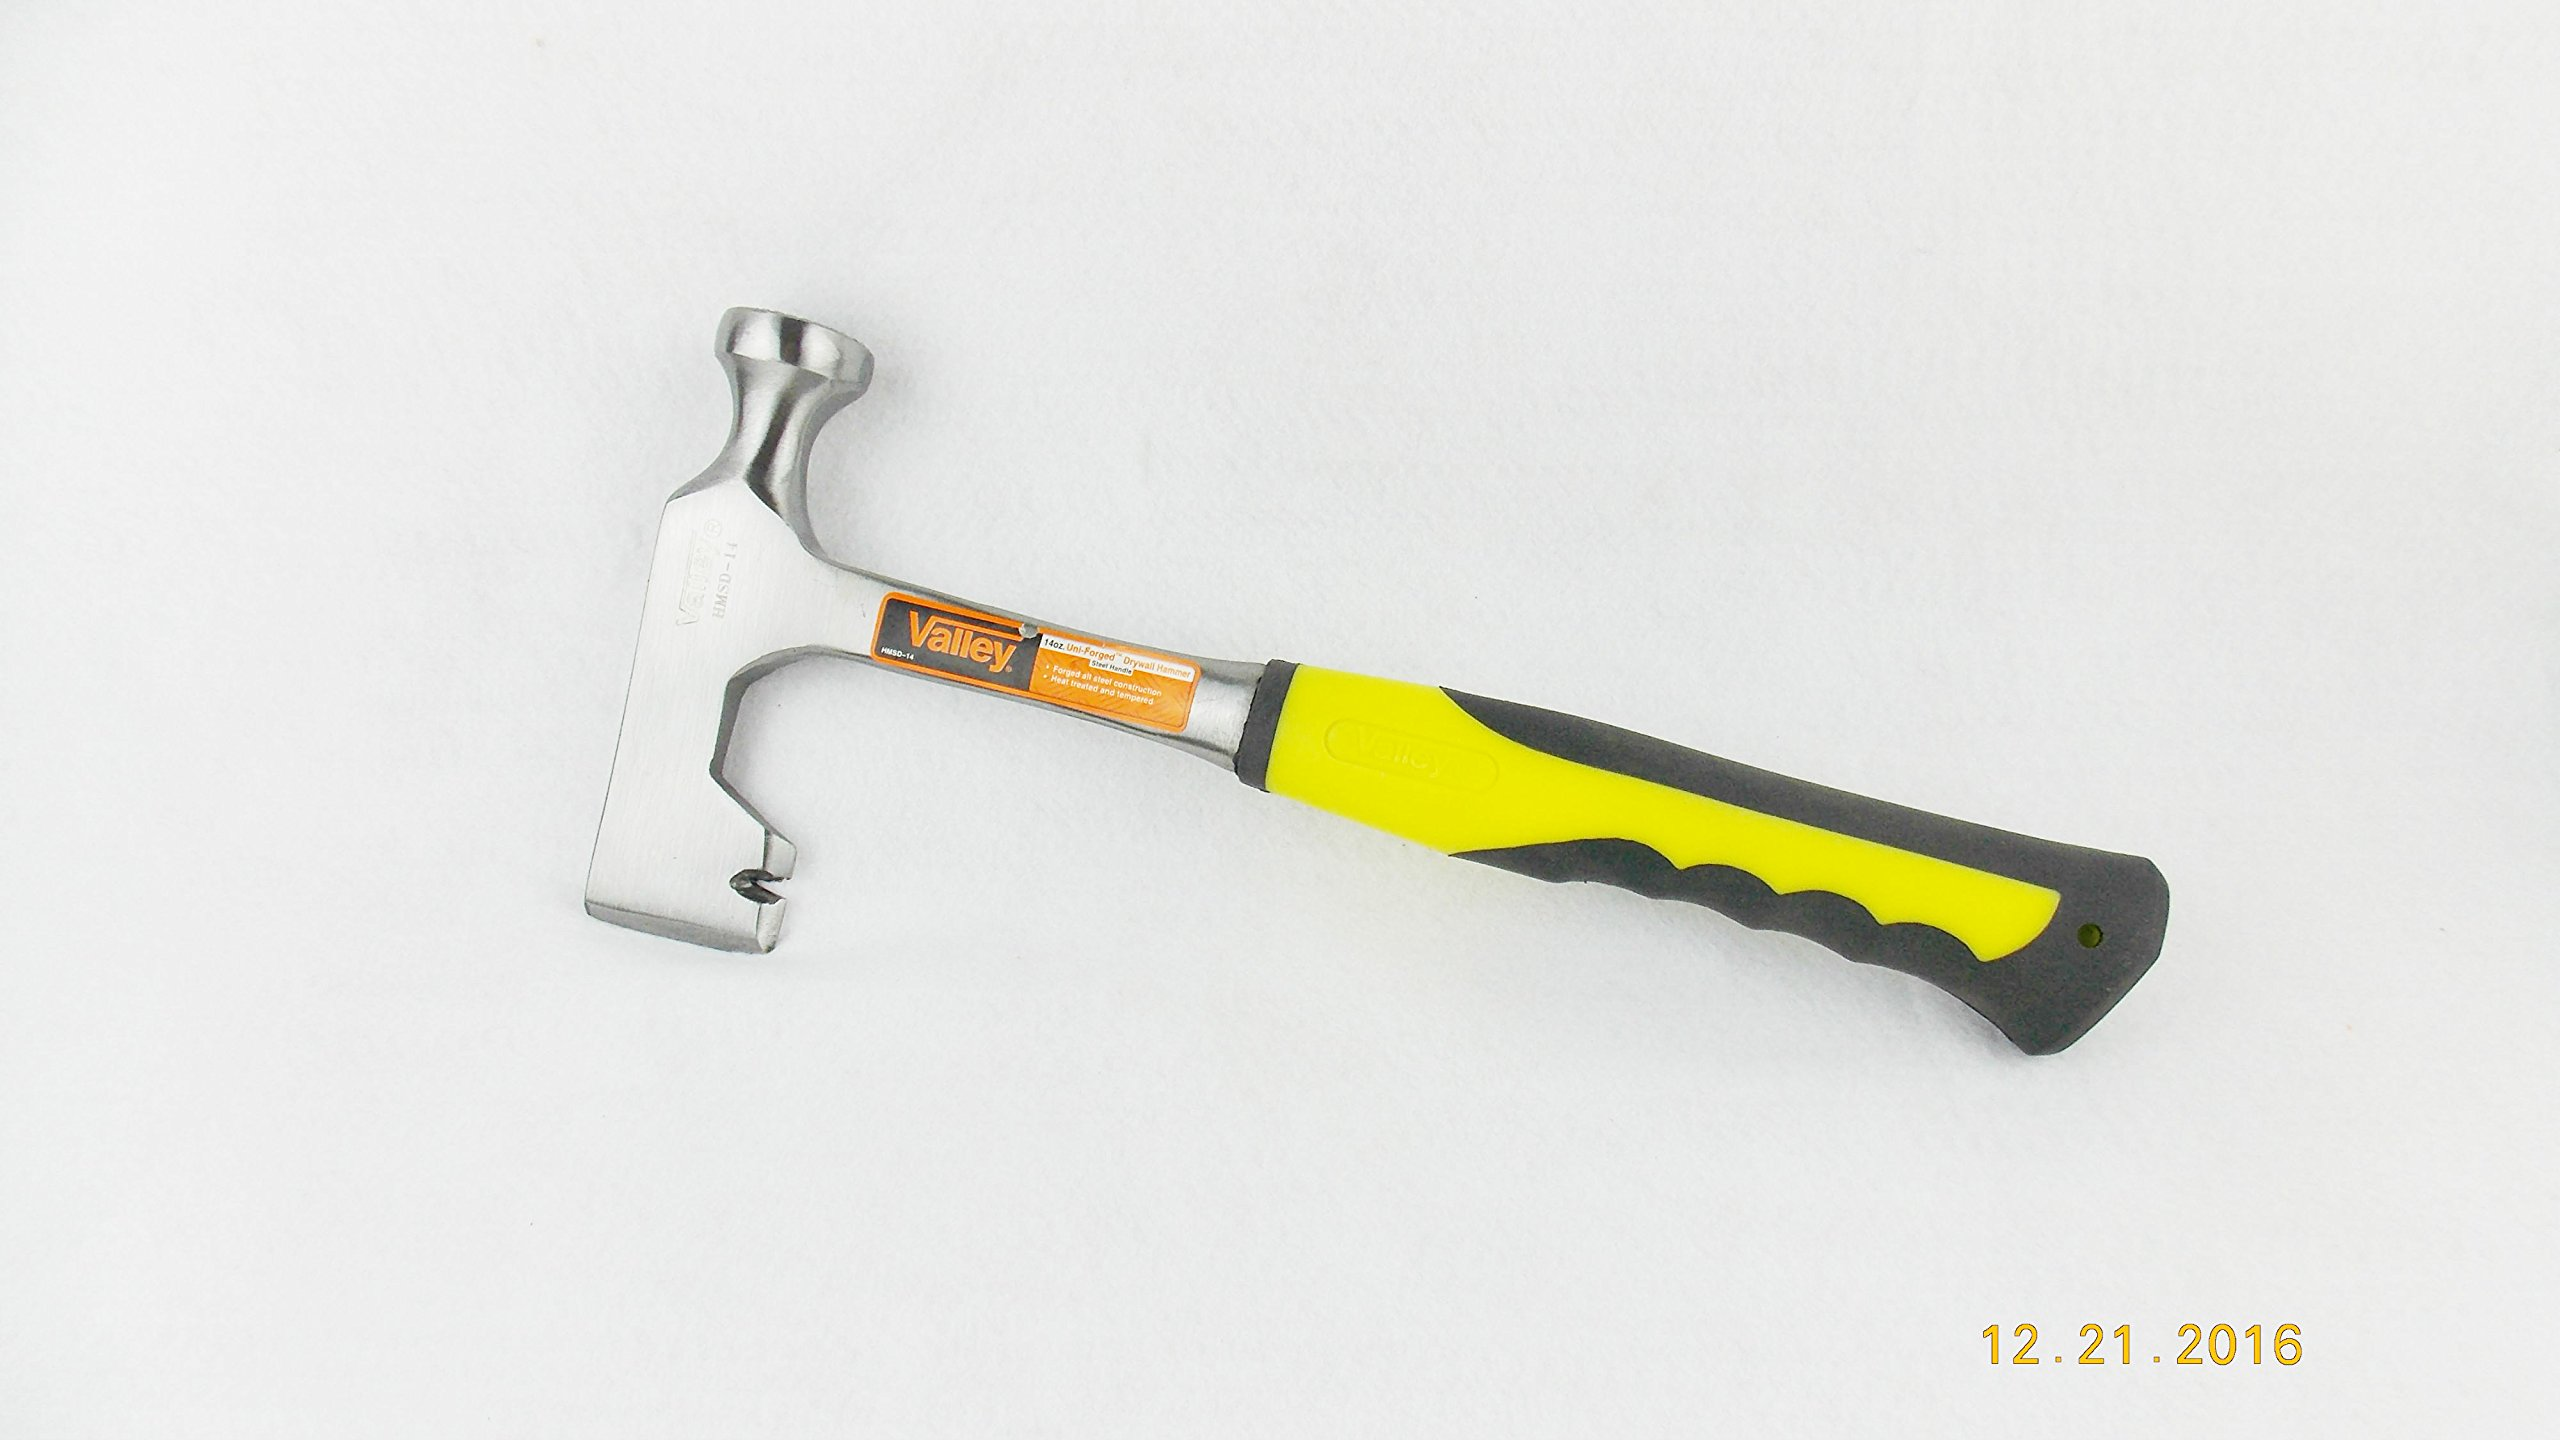 Dry Wall Hammer-one Piece Forged All Steel Drywall Hammer by Forgecraft USA